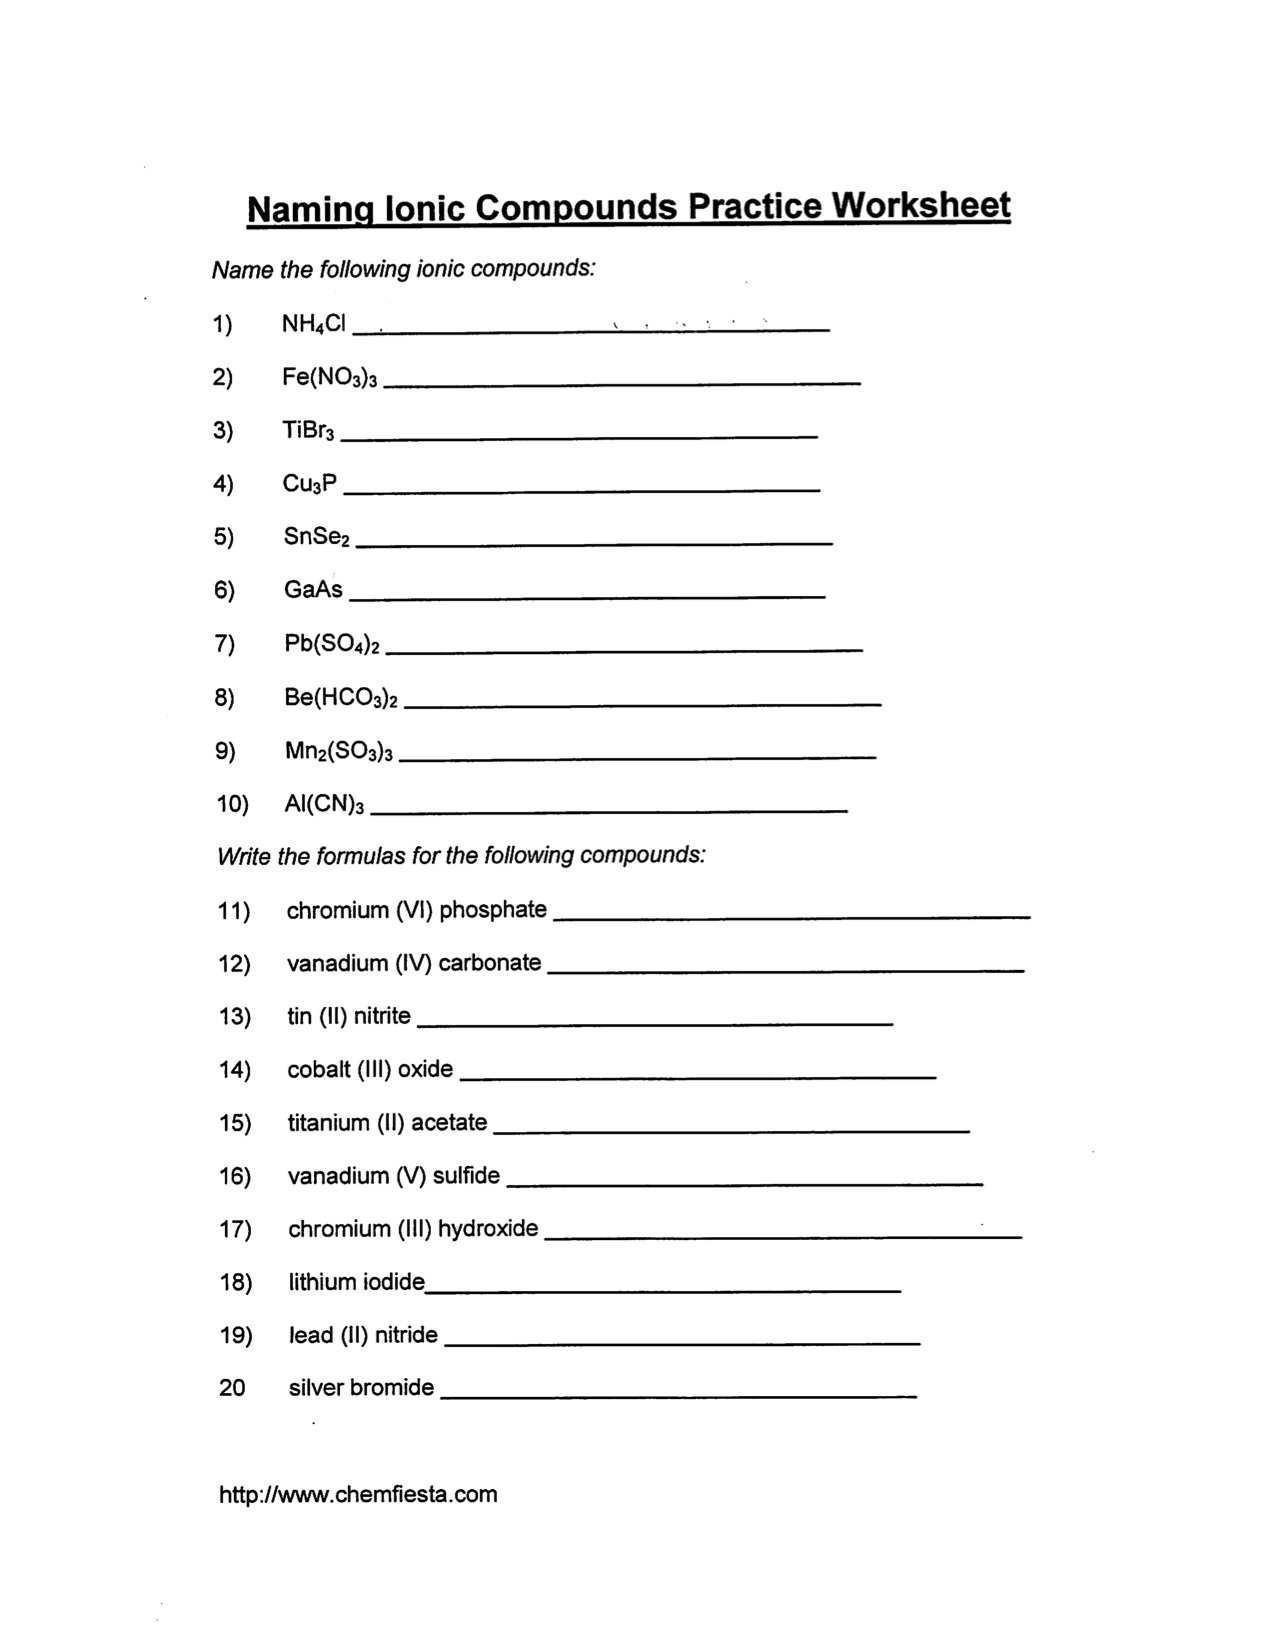 Naming Ionic Compounds Practice Worksheet Key The Best Worksheets